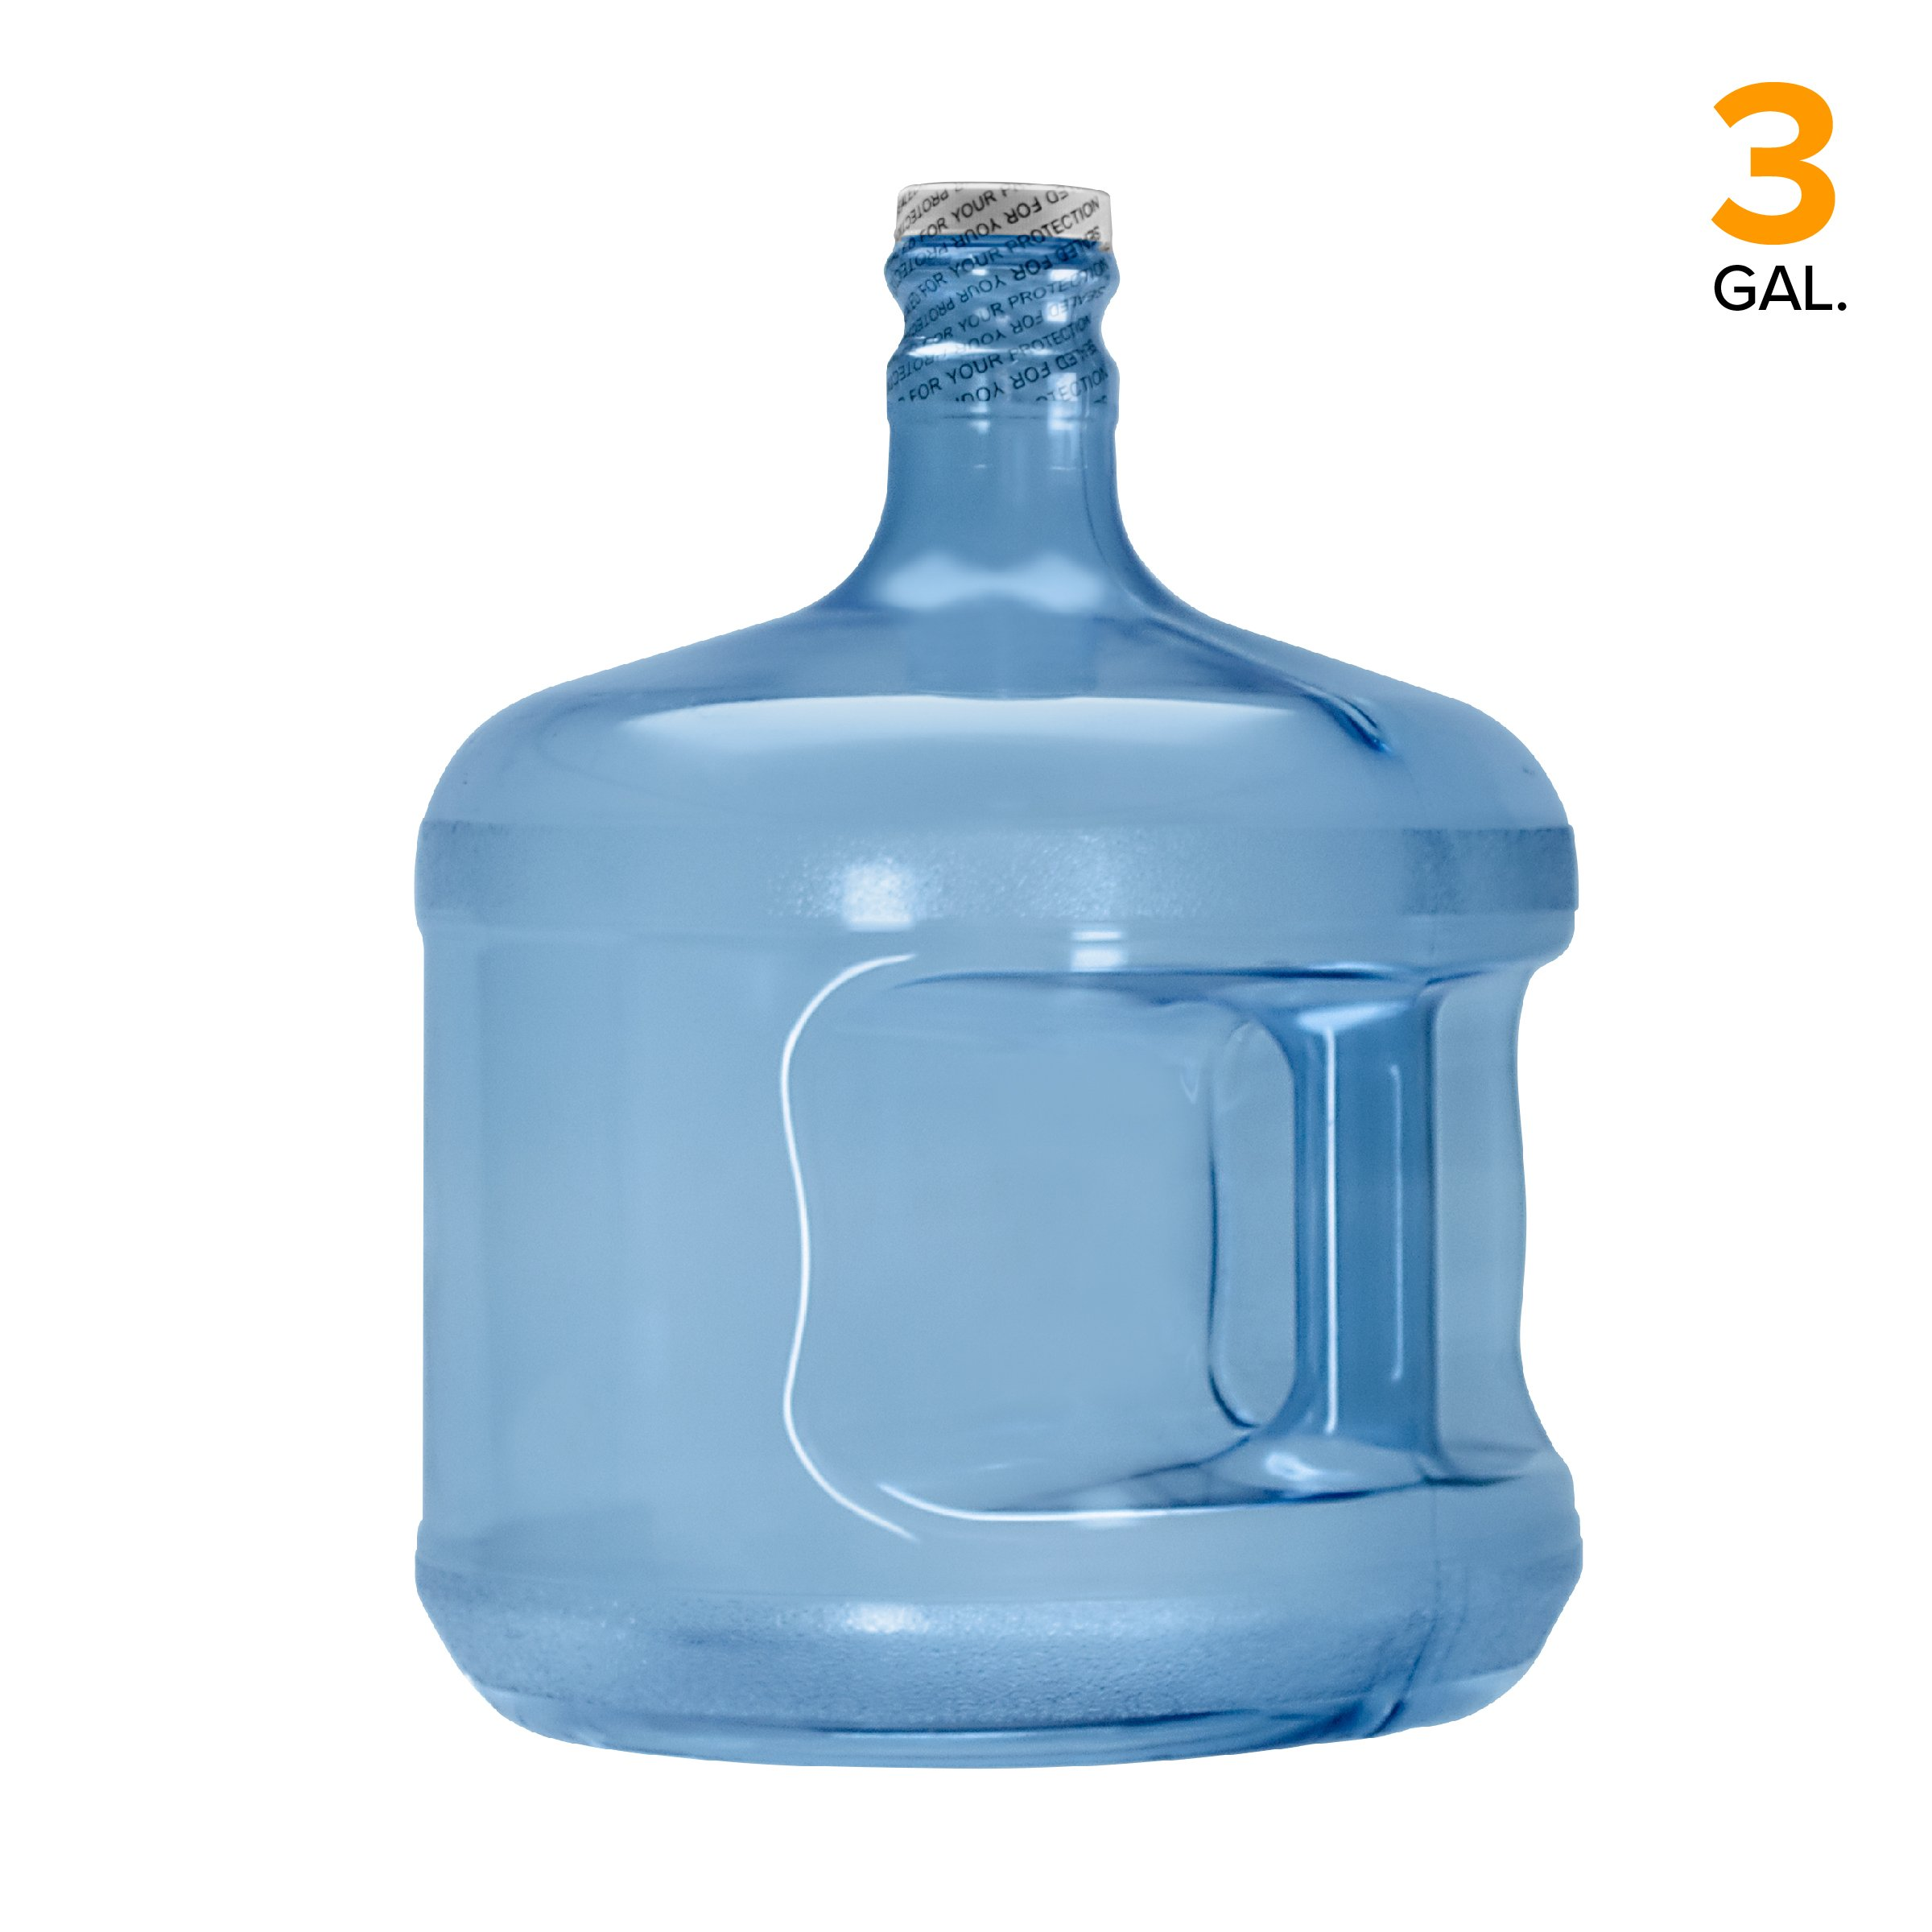 BPA-Free Reusable Plastic Water Bottle Gallon Jug Container - Made in USA (3 Gallon)